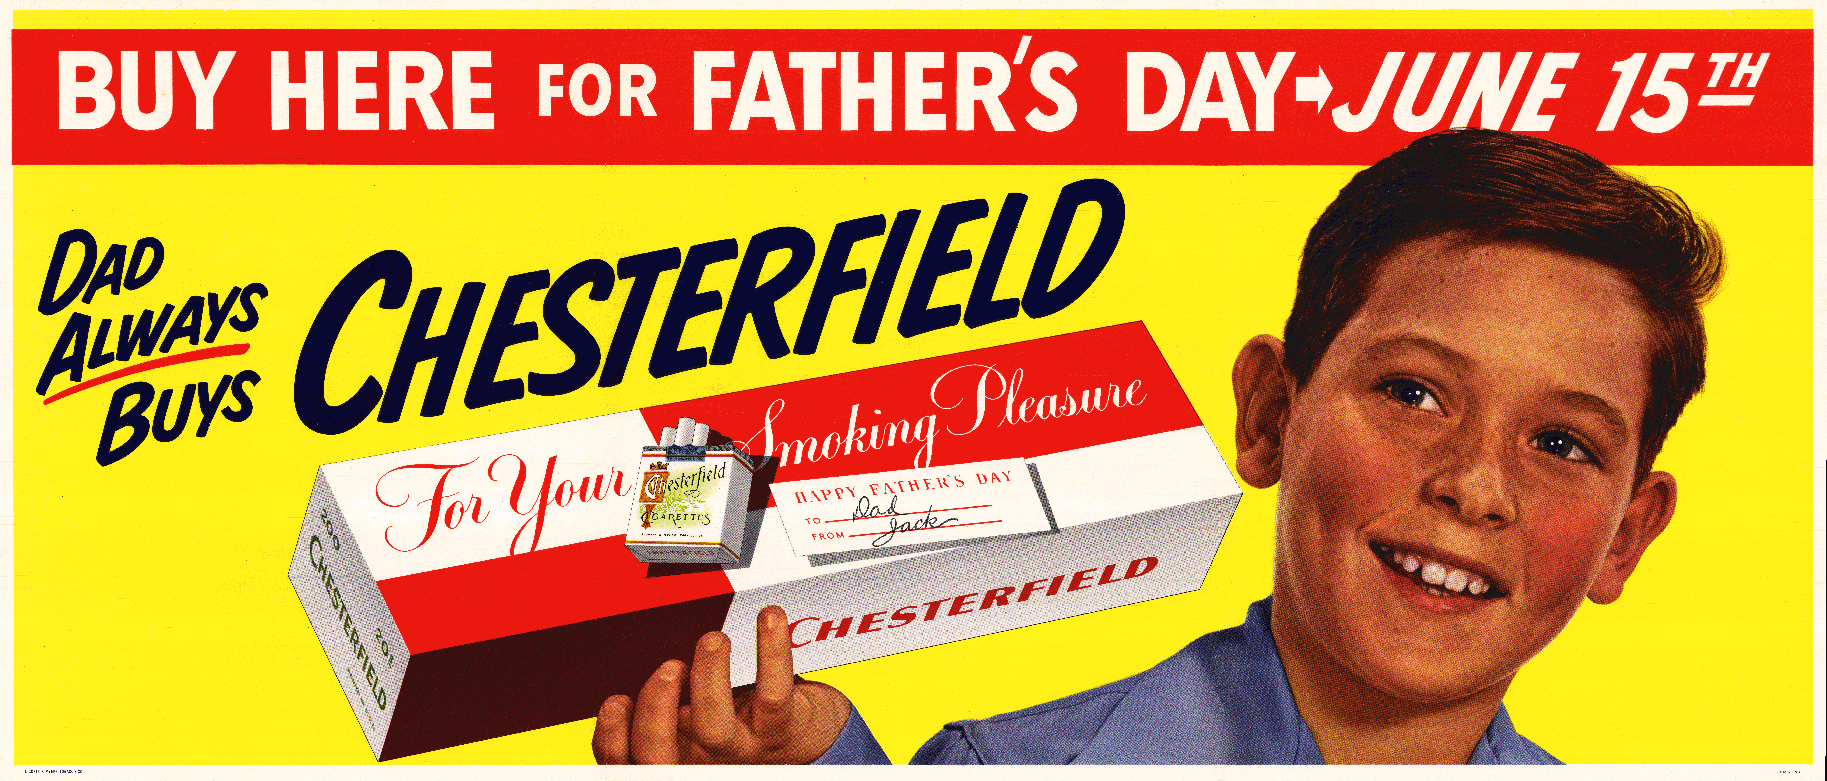 Circa 1950s Chesterfield Ad Buy Here For Fathers Day June 15th - Dad Always Buys Chesterfield